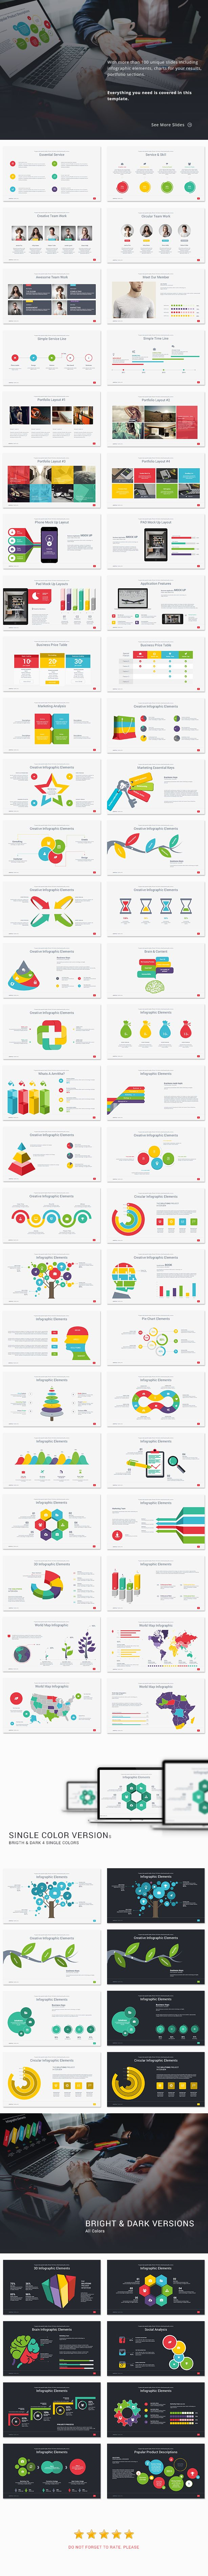 Amritha - Presentation PowerPoint Template #design #slides Download: http://graphicriver.net/item/amritha-presentation-template/11863779?ref=ksioks